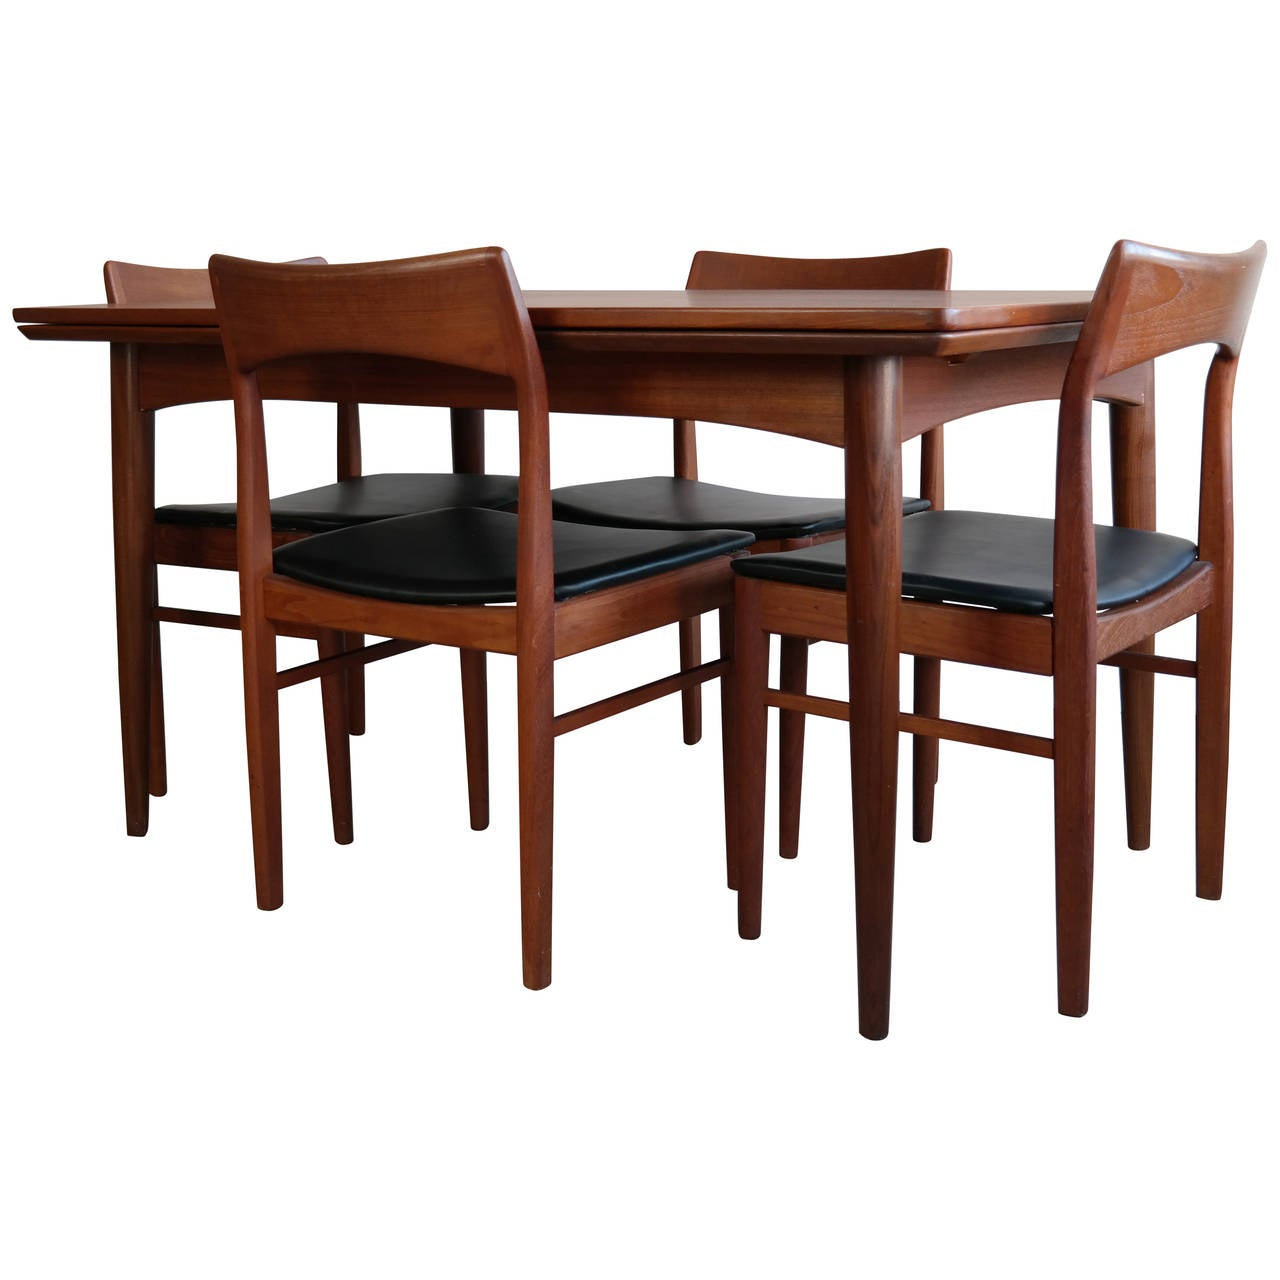 Danish modern dining set in teak at 1stdibs for Apartment furniture sets